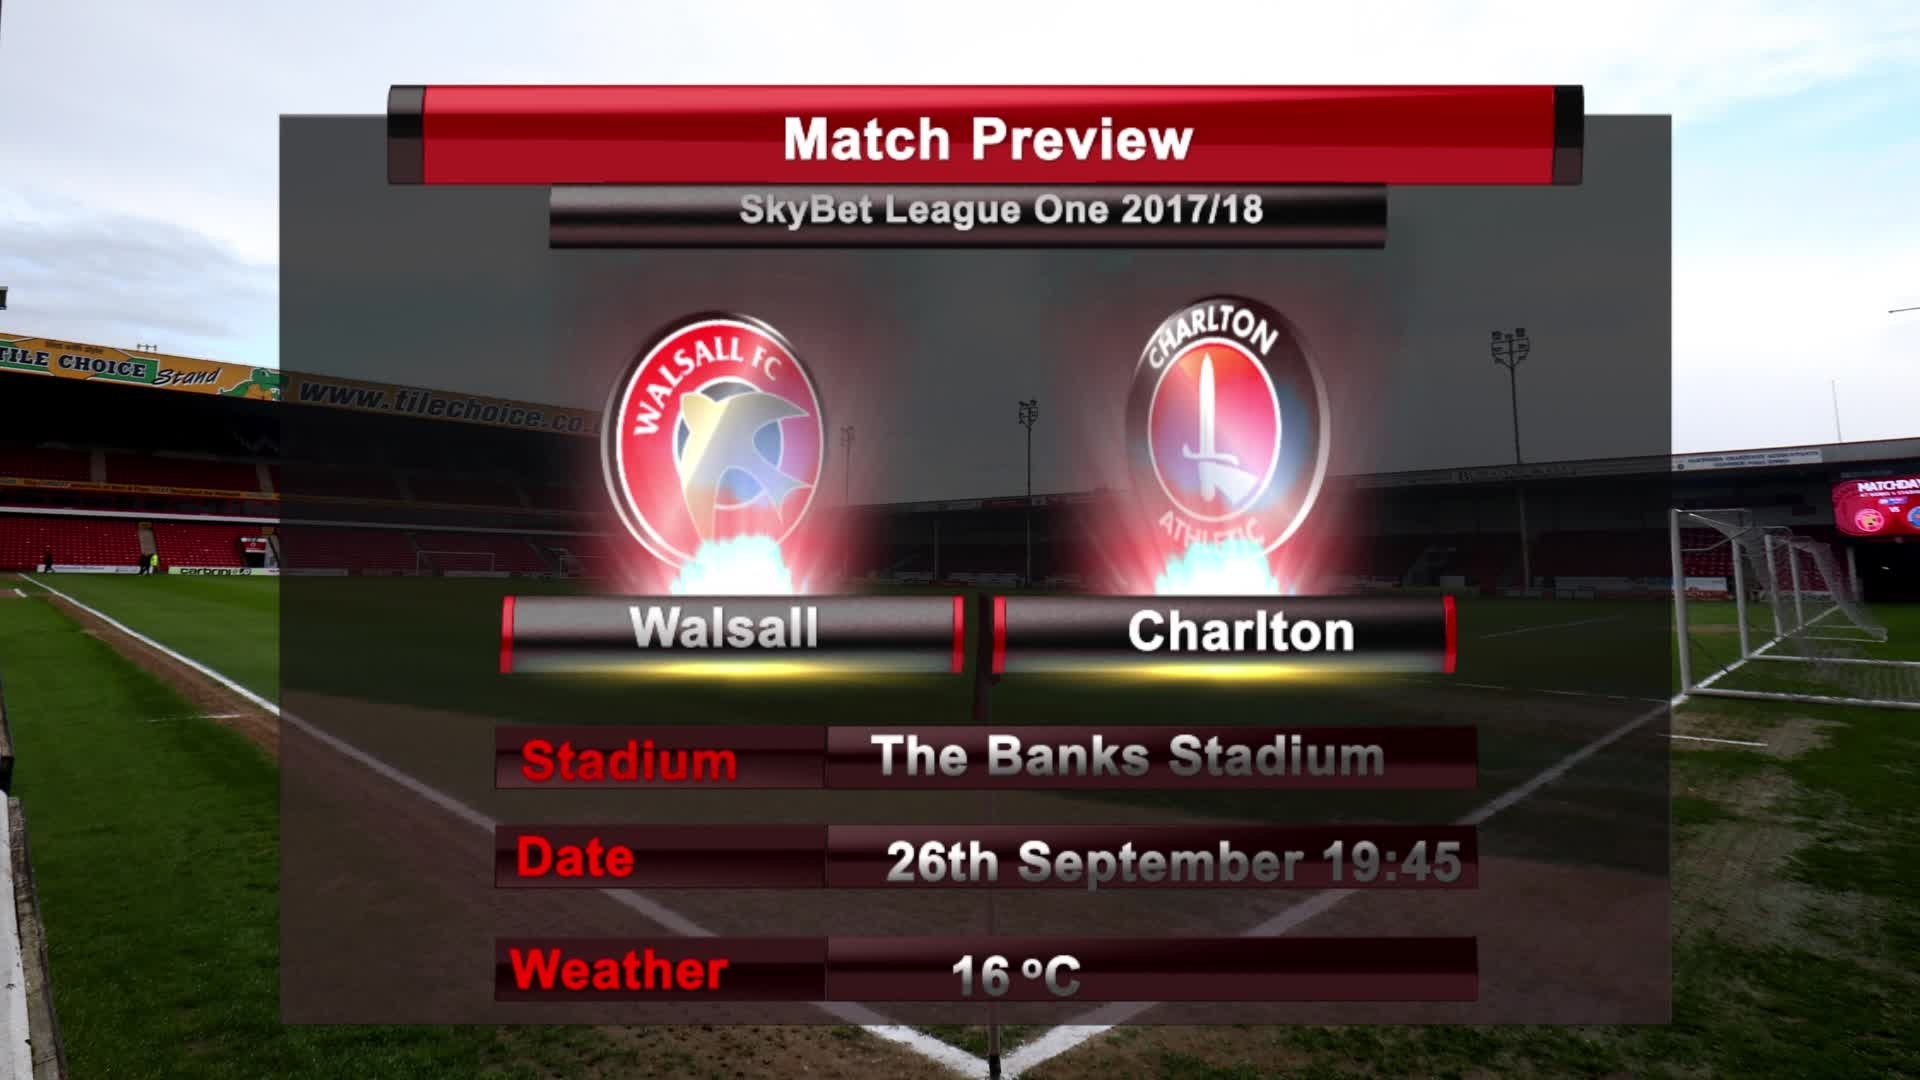 MATCH PREVIEW | Walsall vs Charlton